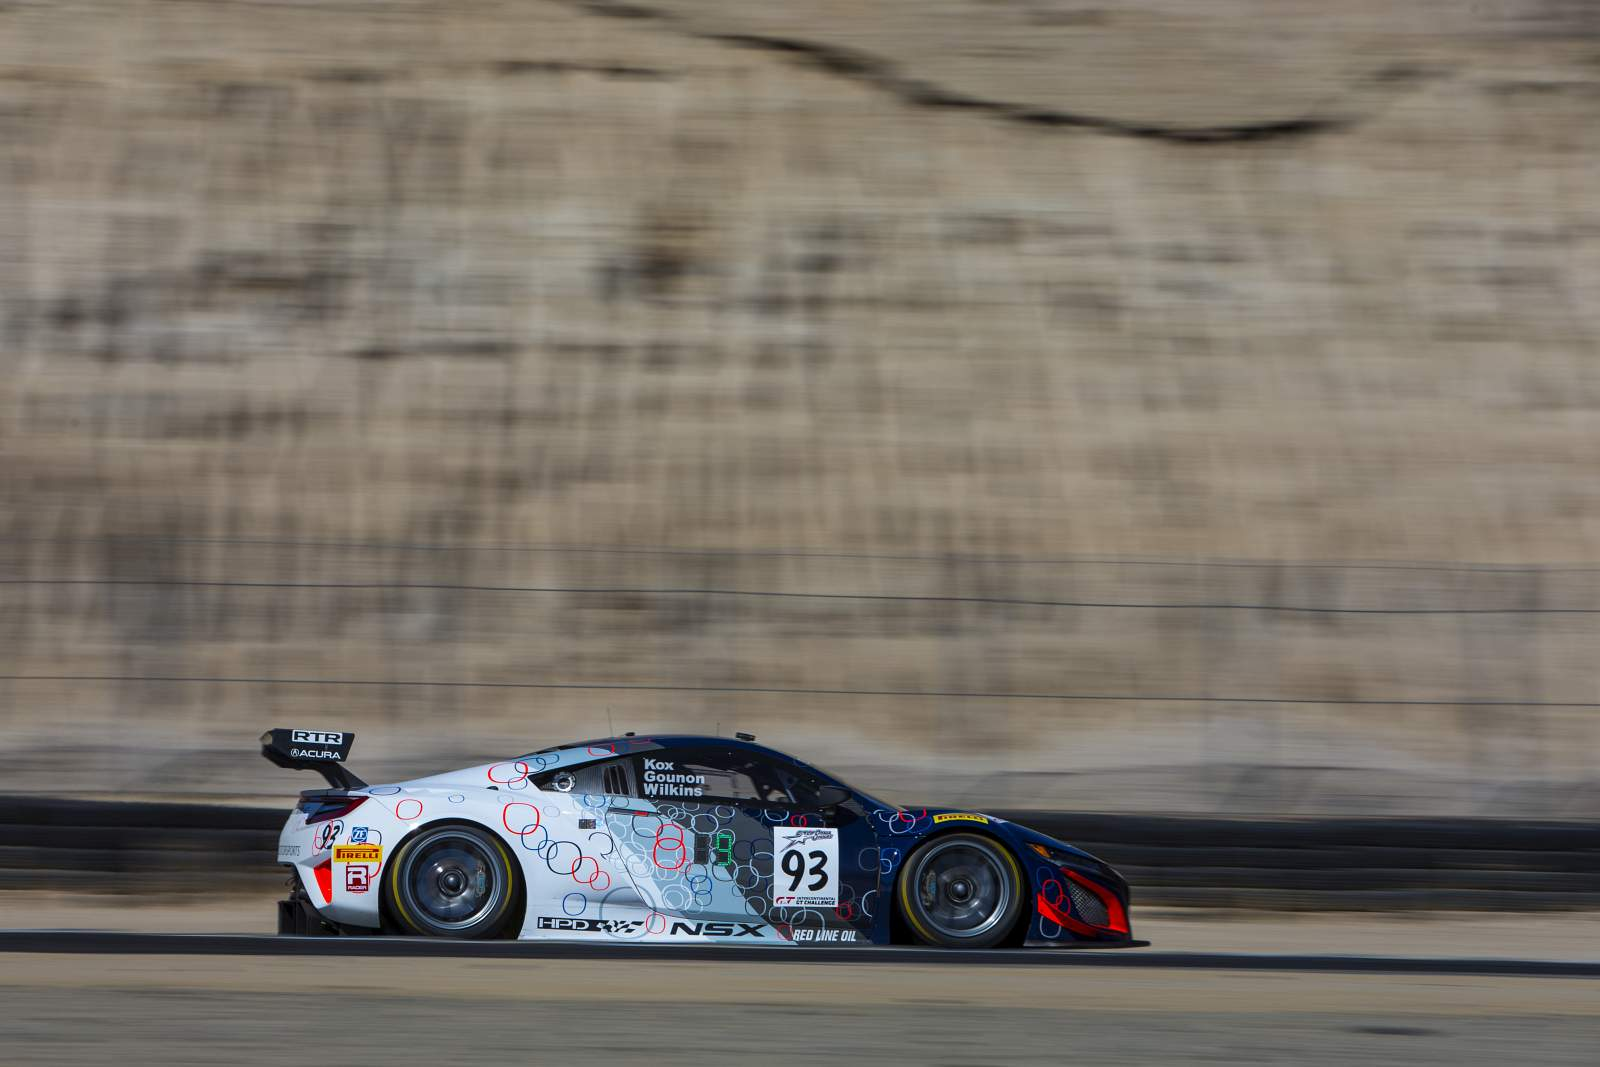 peter-kox-realtime-racing-pirelli-world-challenge-california-093